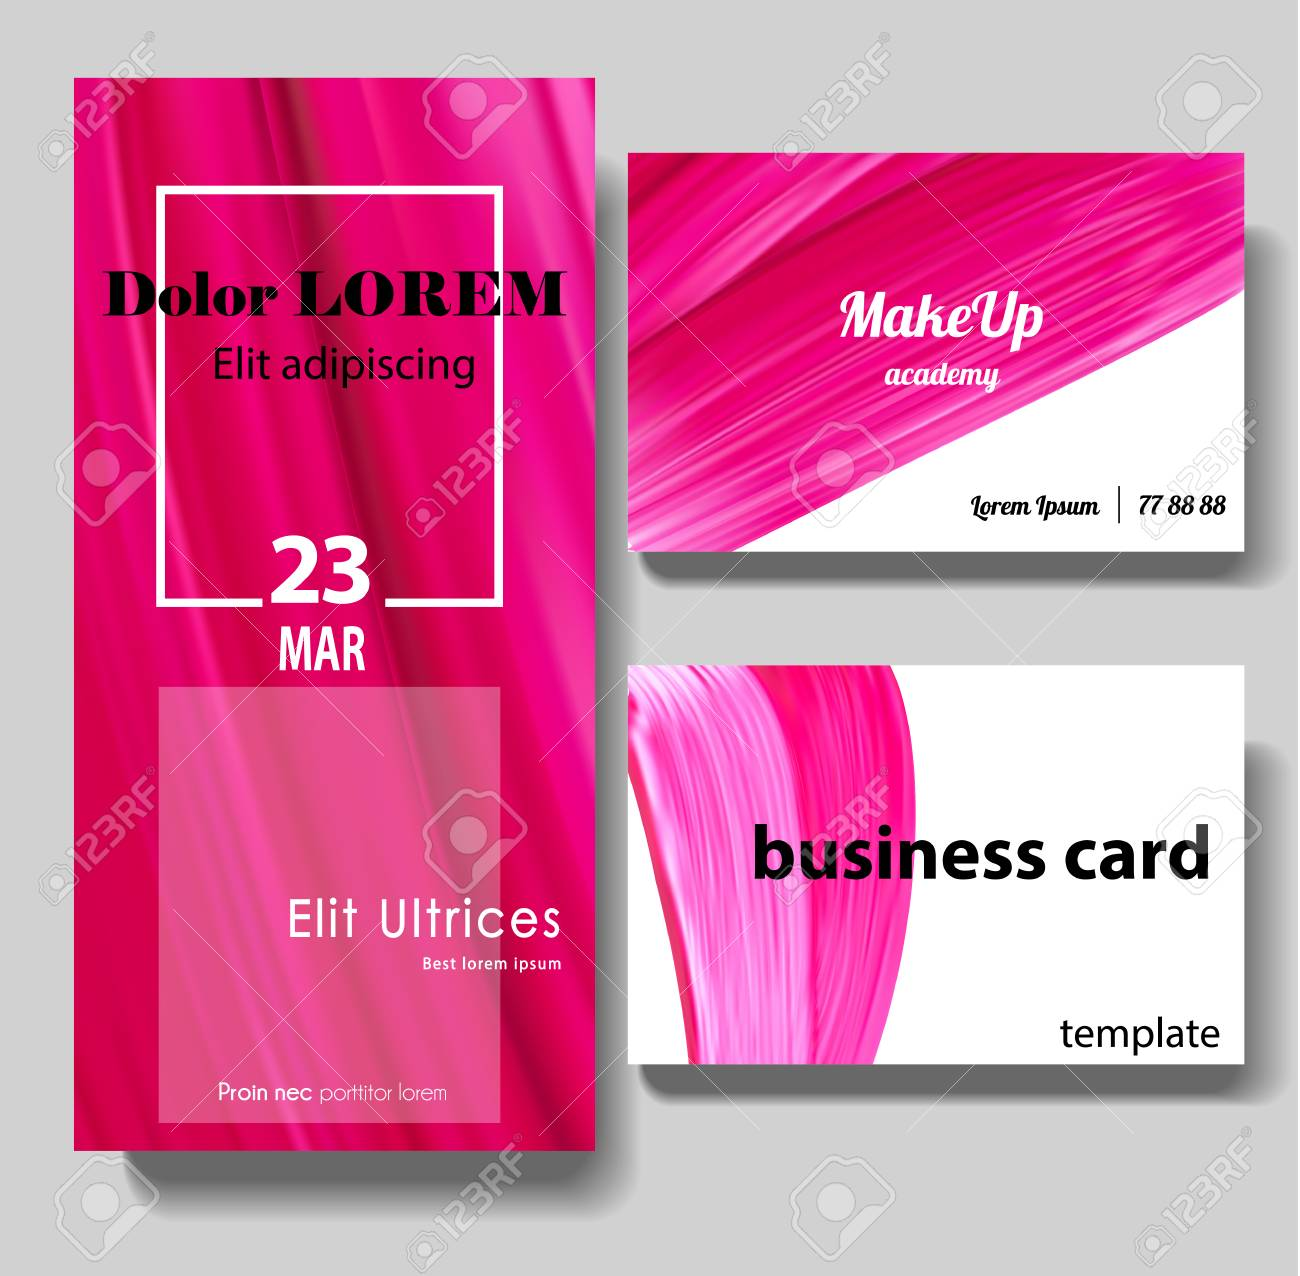 Makeup business card beauty flyer template paint brush pink makeup business card beauty flyer template paint brush pink smear with different design colourmoves